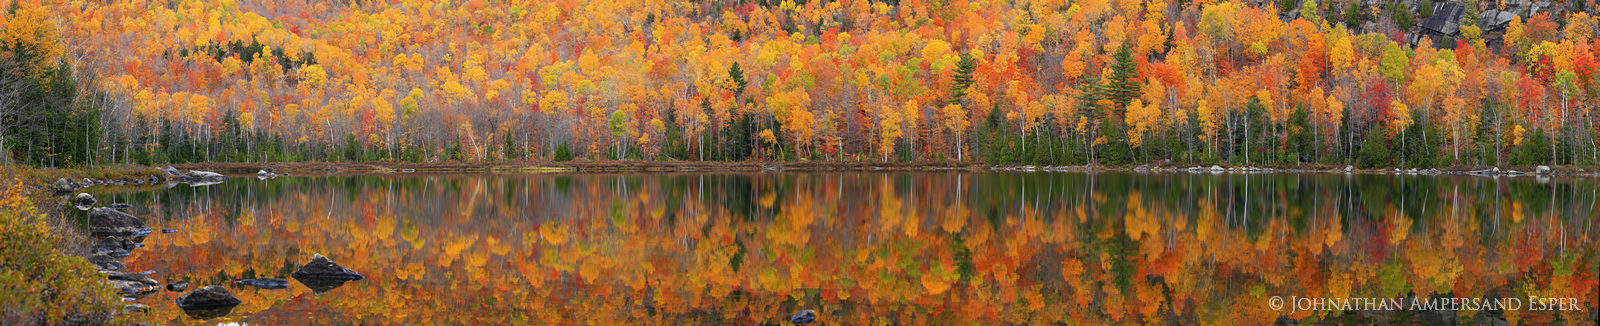 Round Pond,panorama,autumn,fall,treeline,shoreline,reflection,trees,, photo